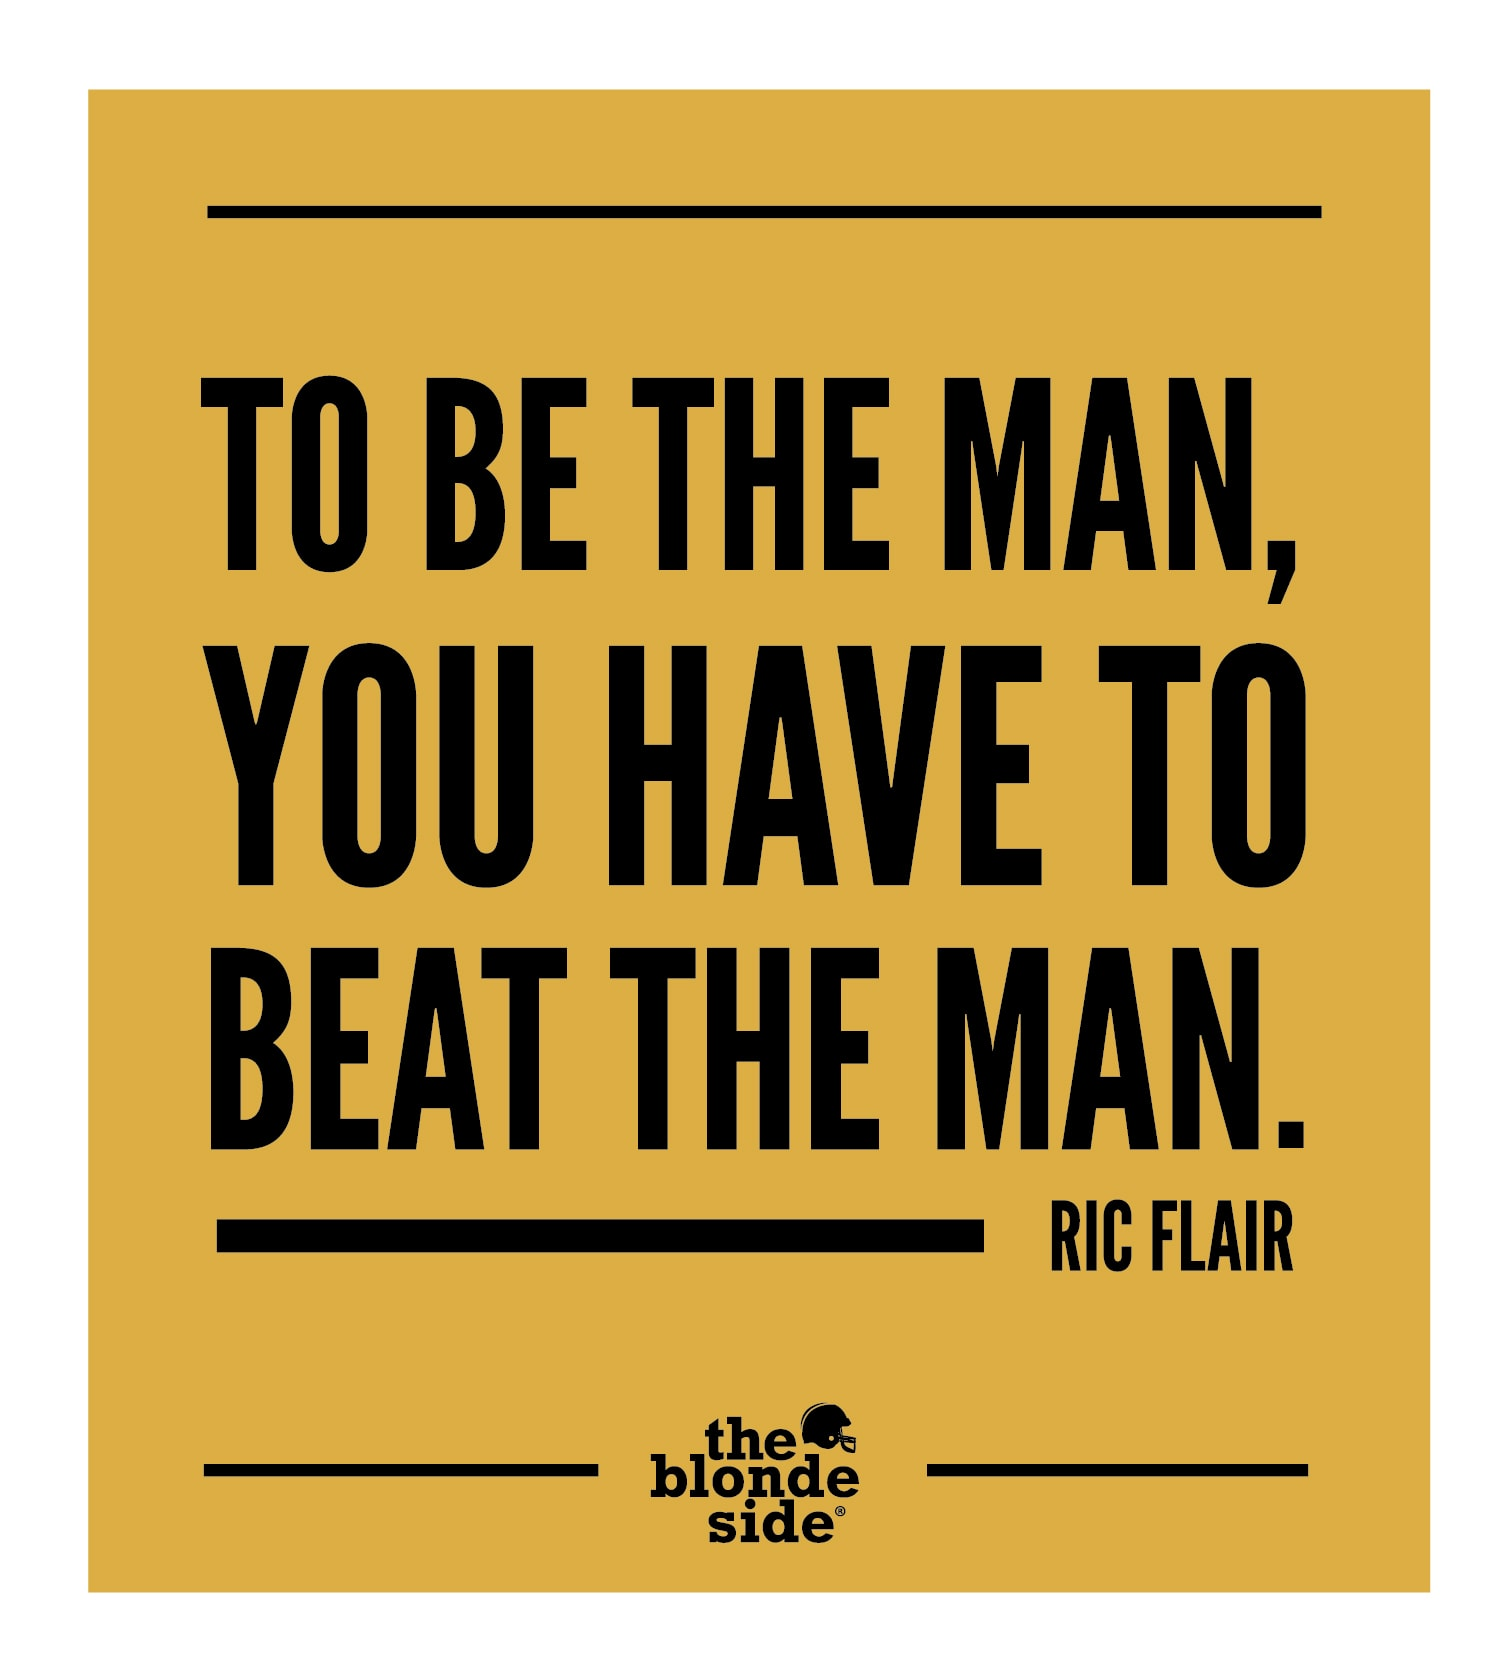 Branding Quotes Quotes & Proof Branding  The Blonde Side  The Blonde Side